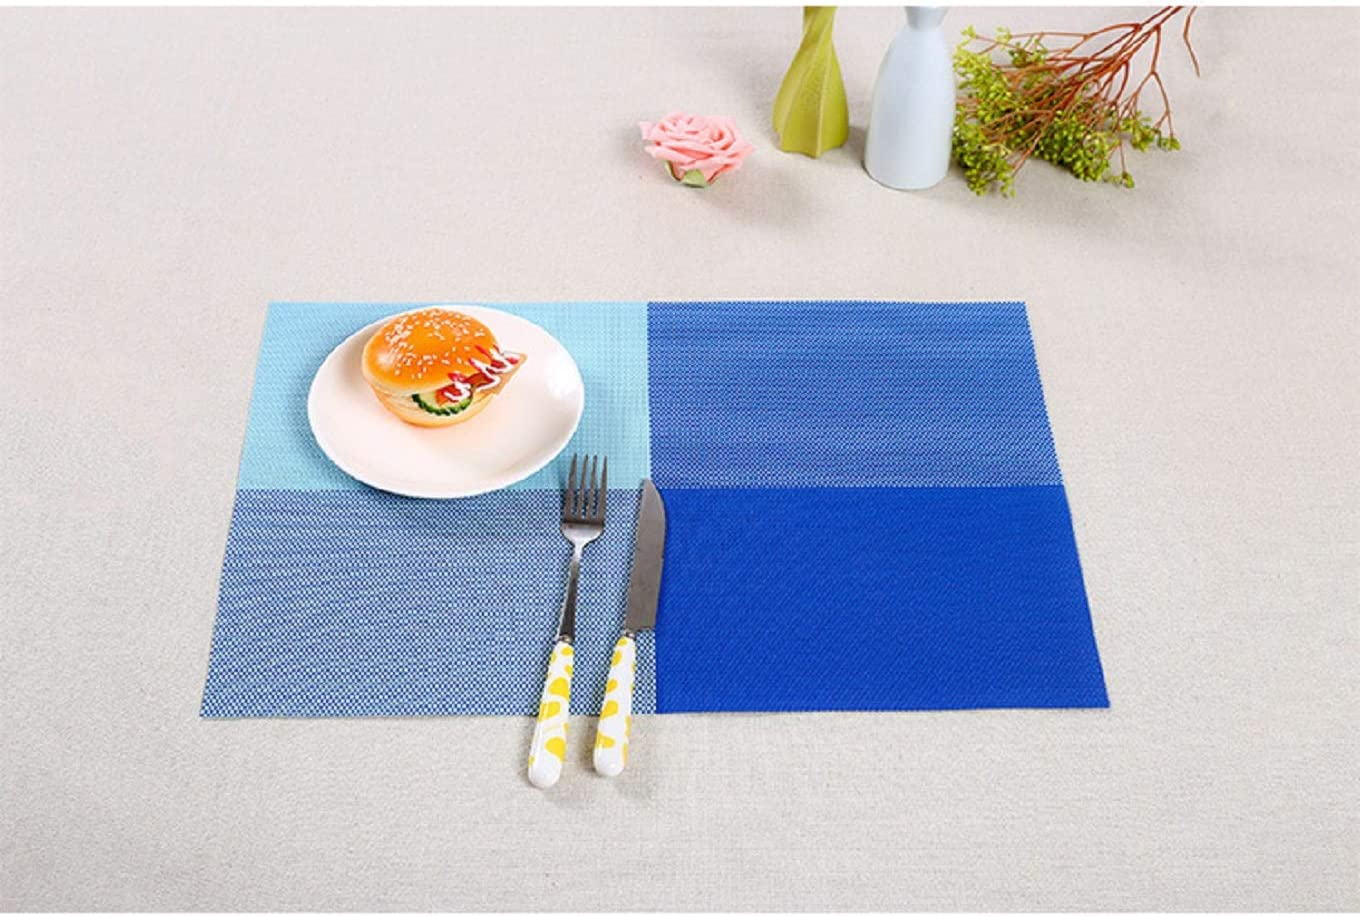 United Office Chair. 002 Mats Kitchen Dining Table Decoration, Blue